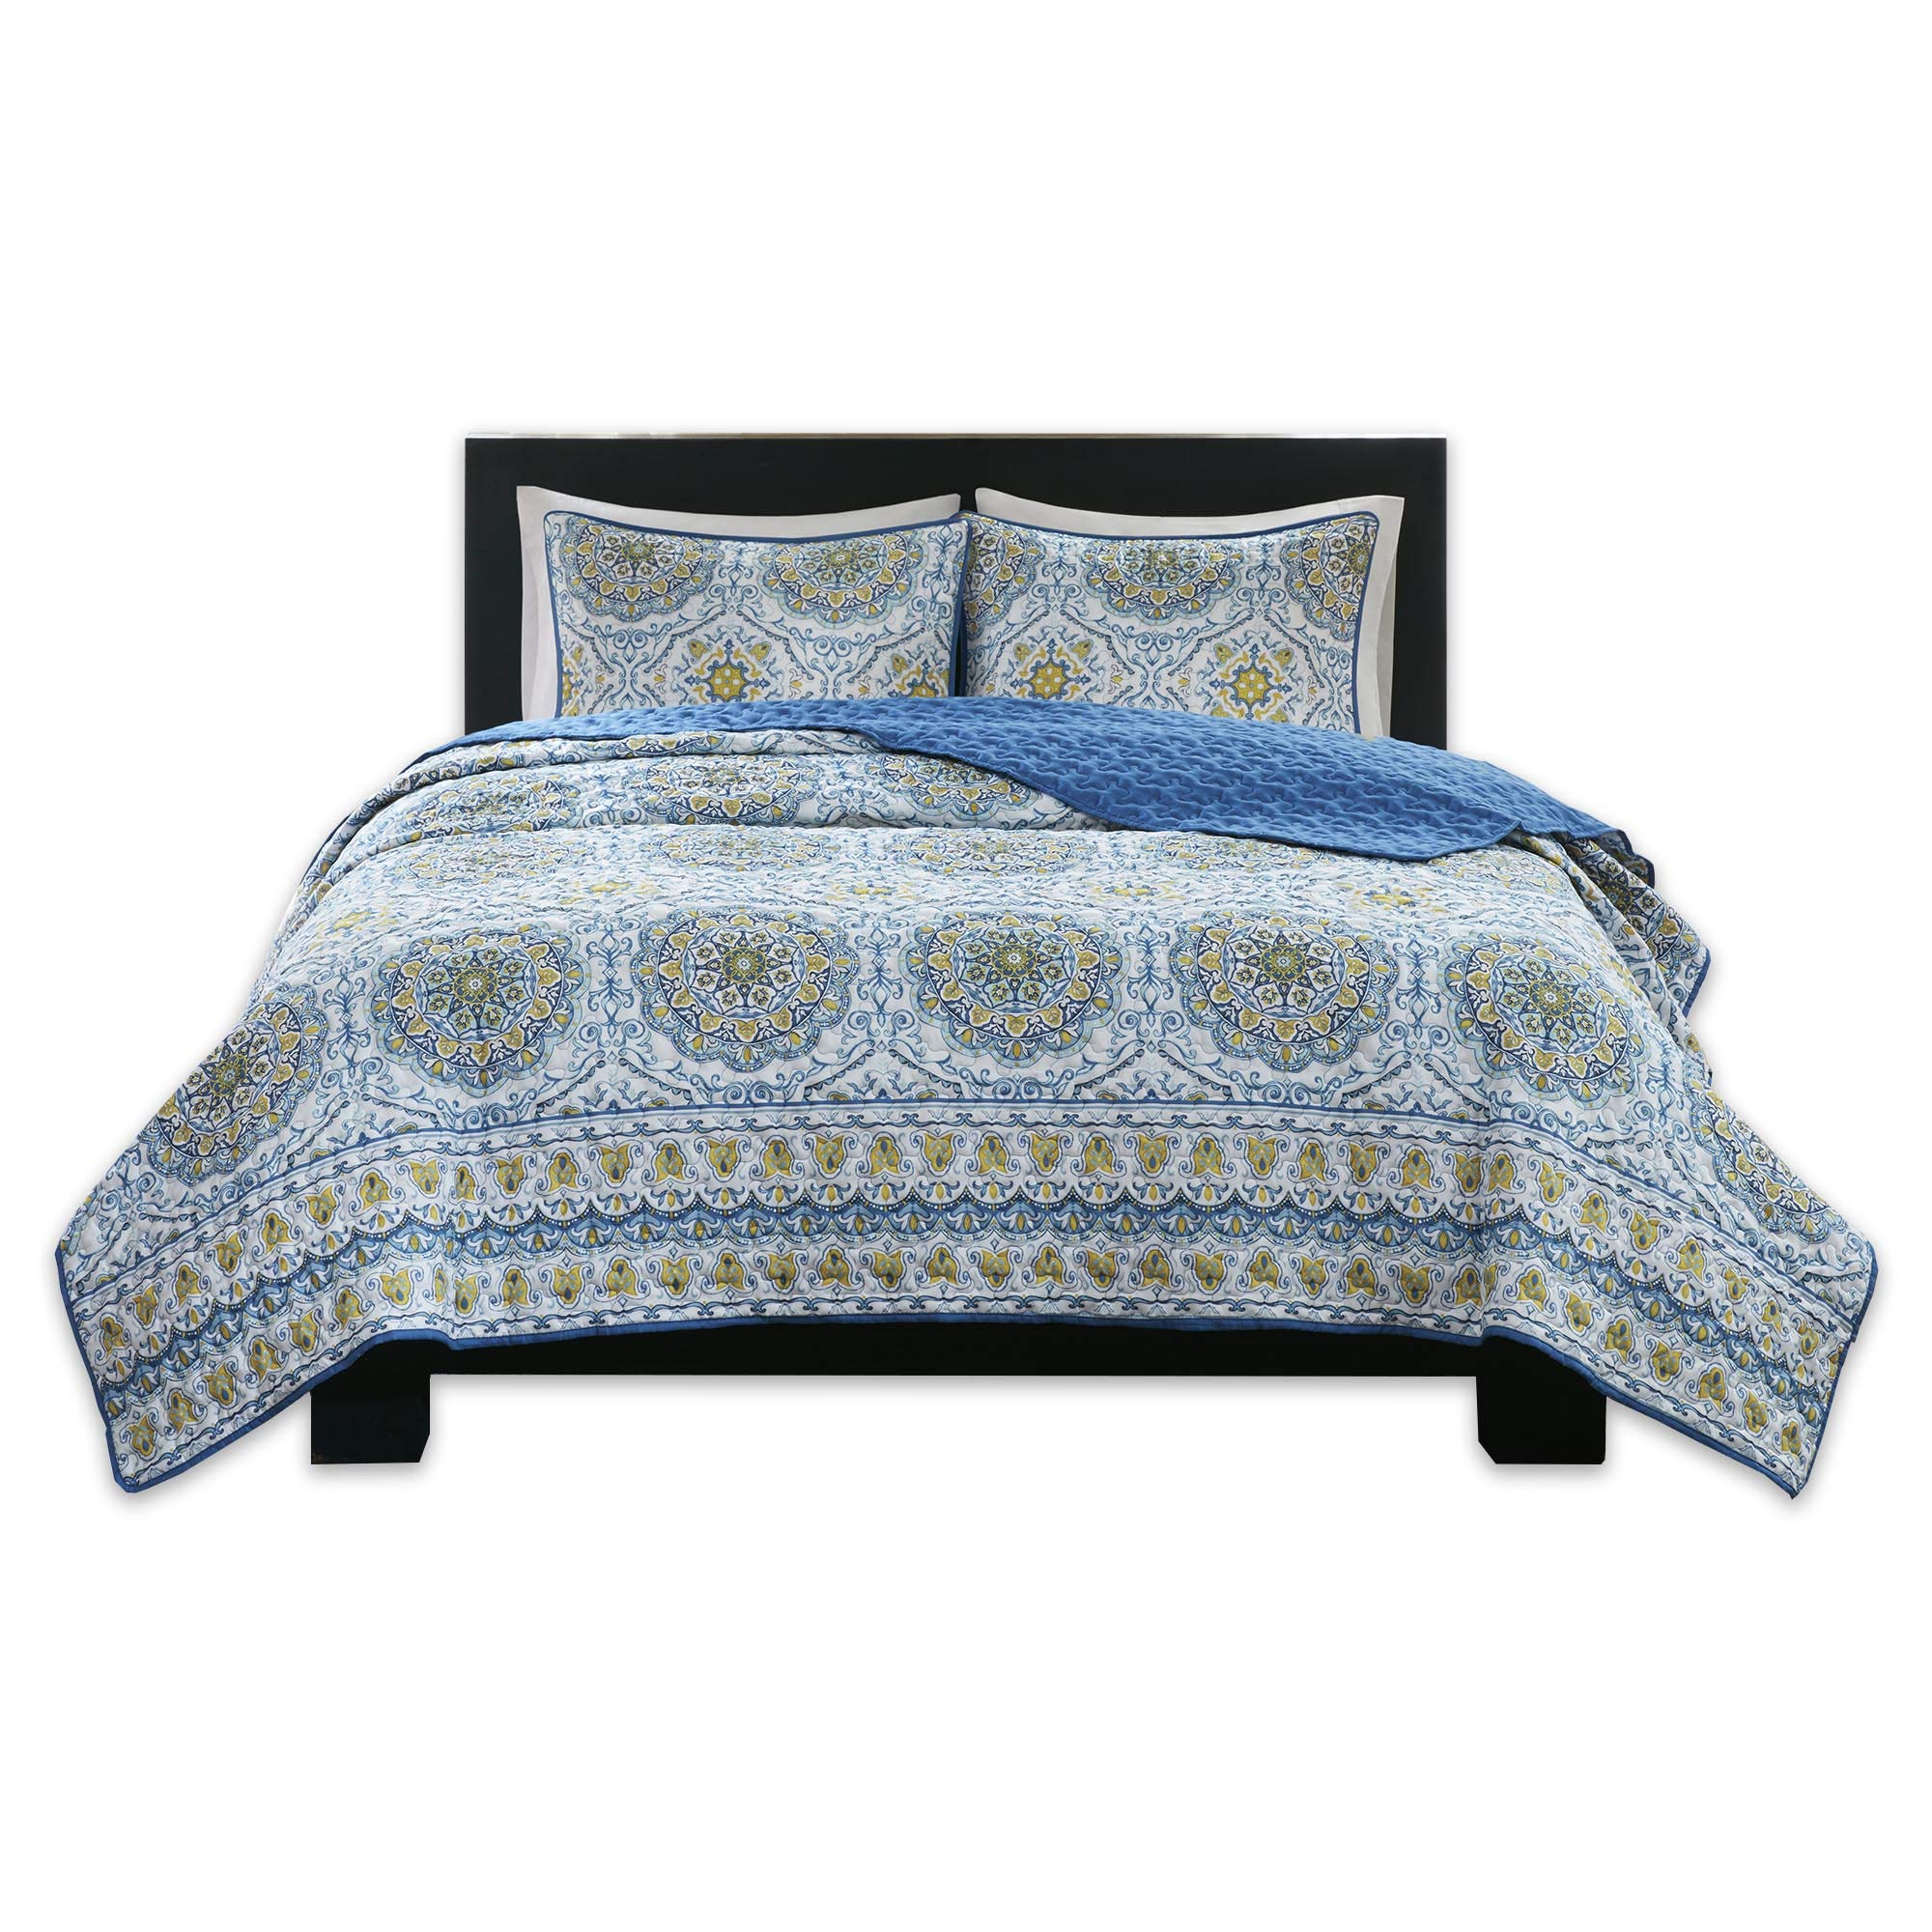 Home Essence Taya 3 Piece King Quilt Set Reversible Solid Printed Medallions Pattern Light-Weight Rustic Coverlet Soft Microfiber Bedding for All Season, Blue by Home Essence (Image #1)